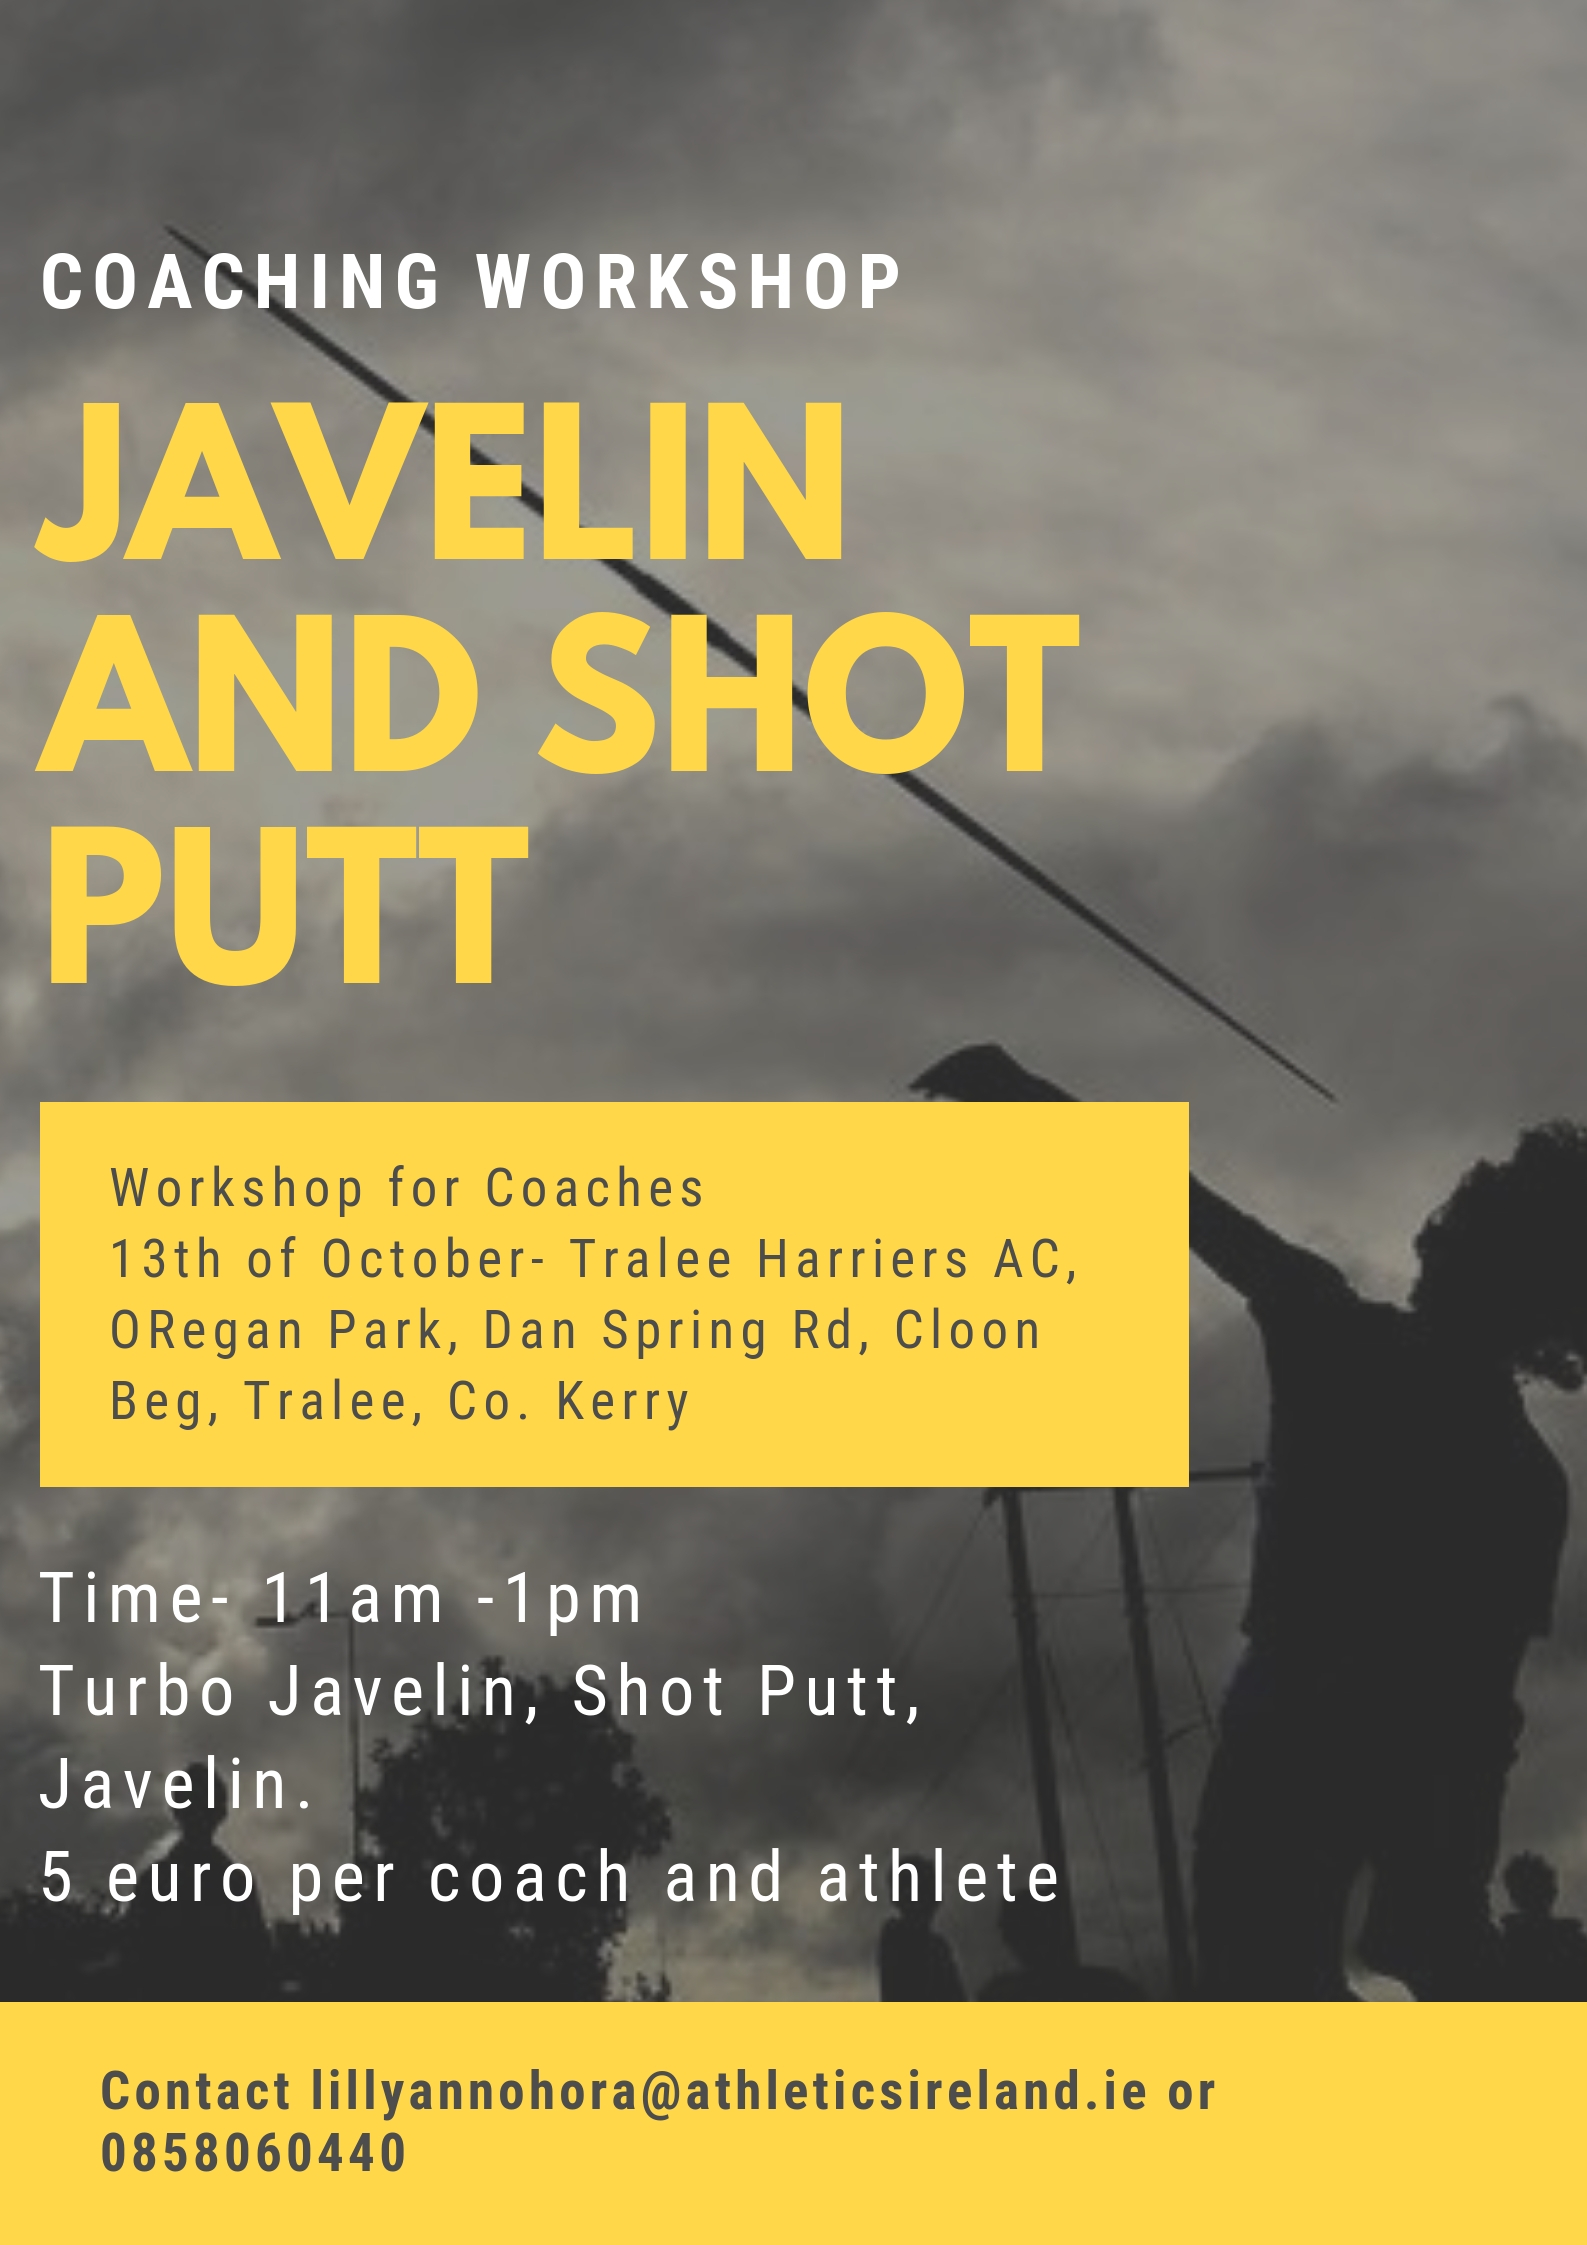 Introduction to Javelin (+Turbo) and Shot Putt